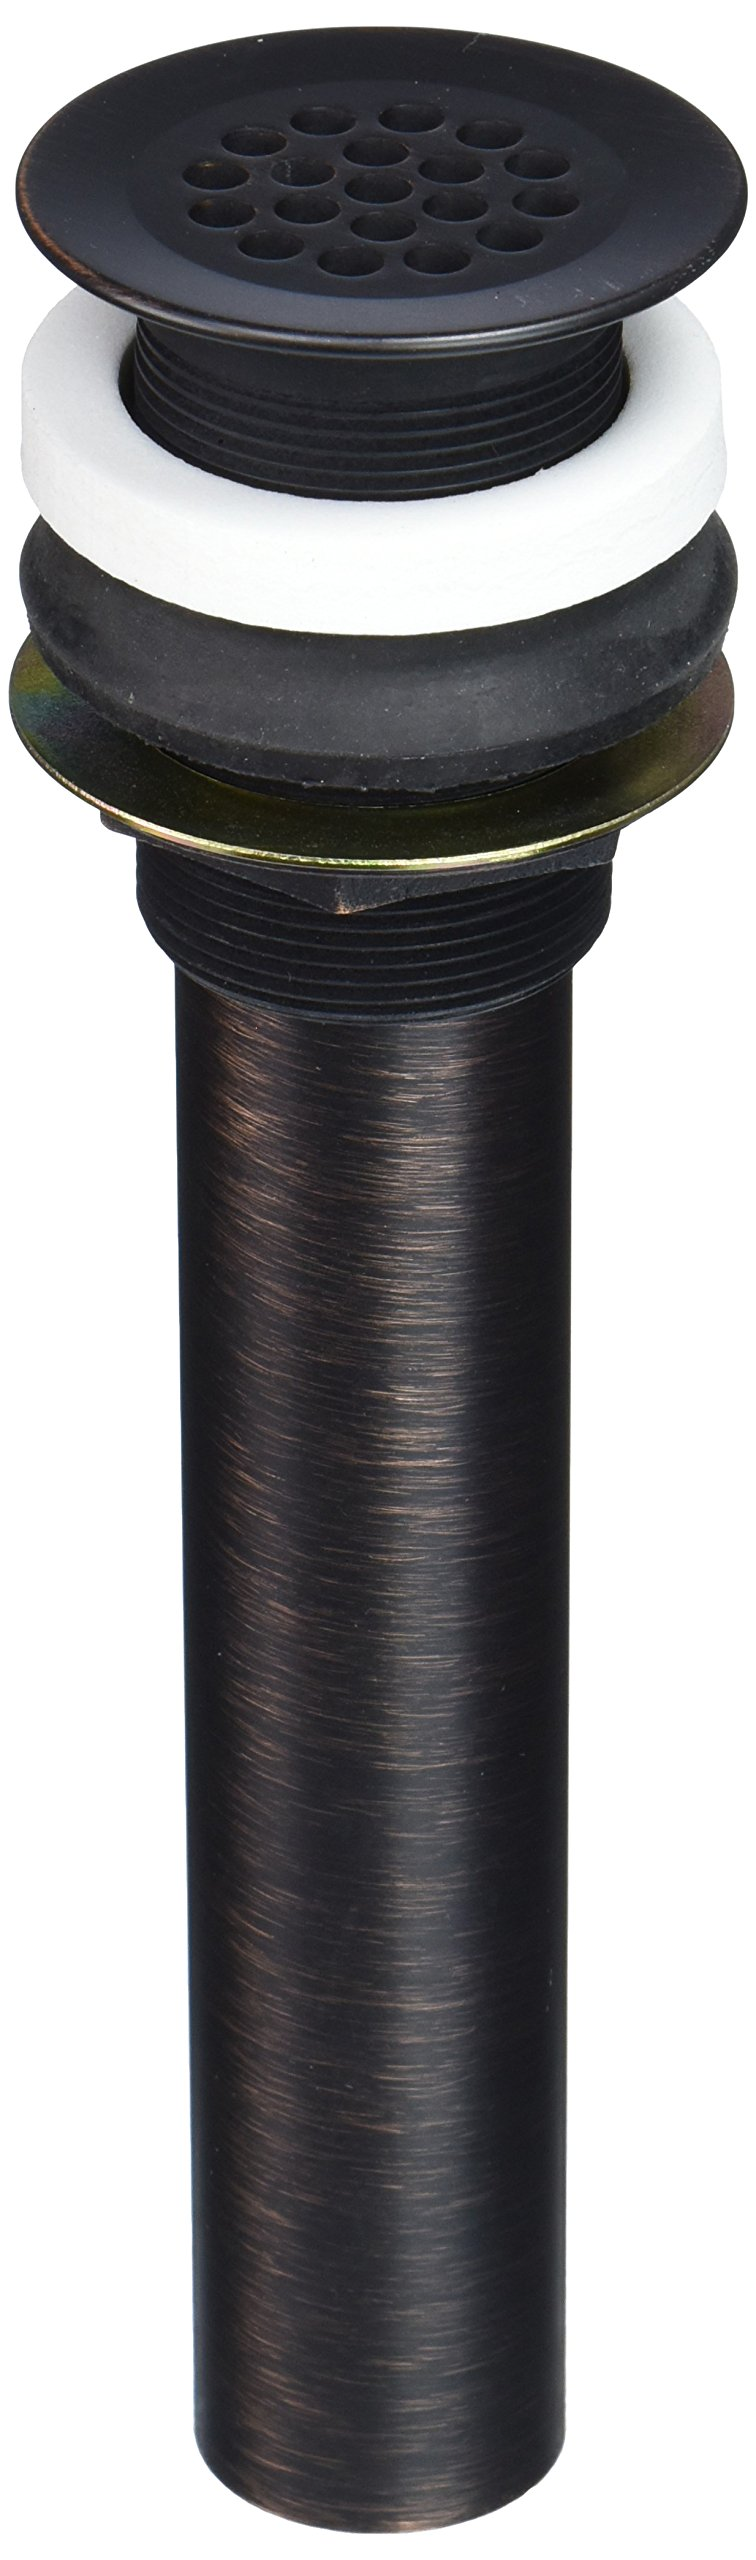 Jones Stephens D7010WB Old World Bronze Lavatory Drain without Overflow